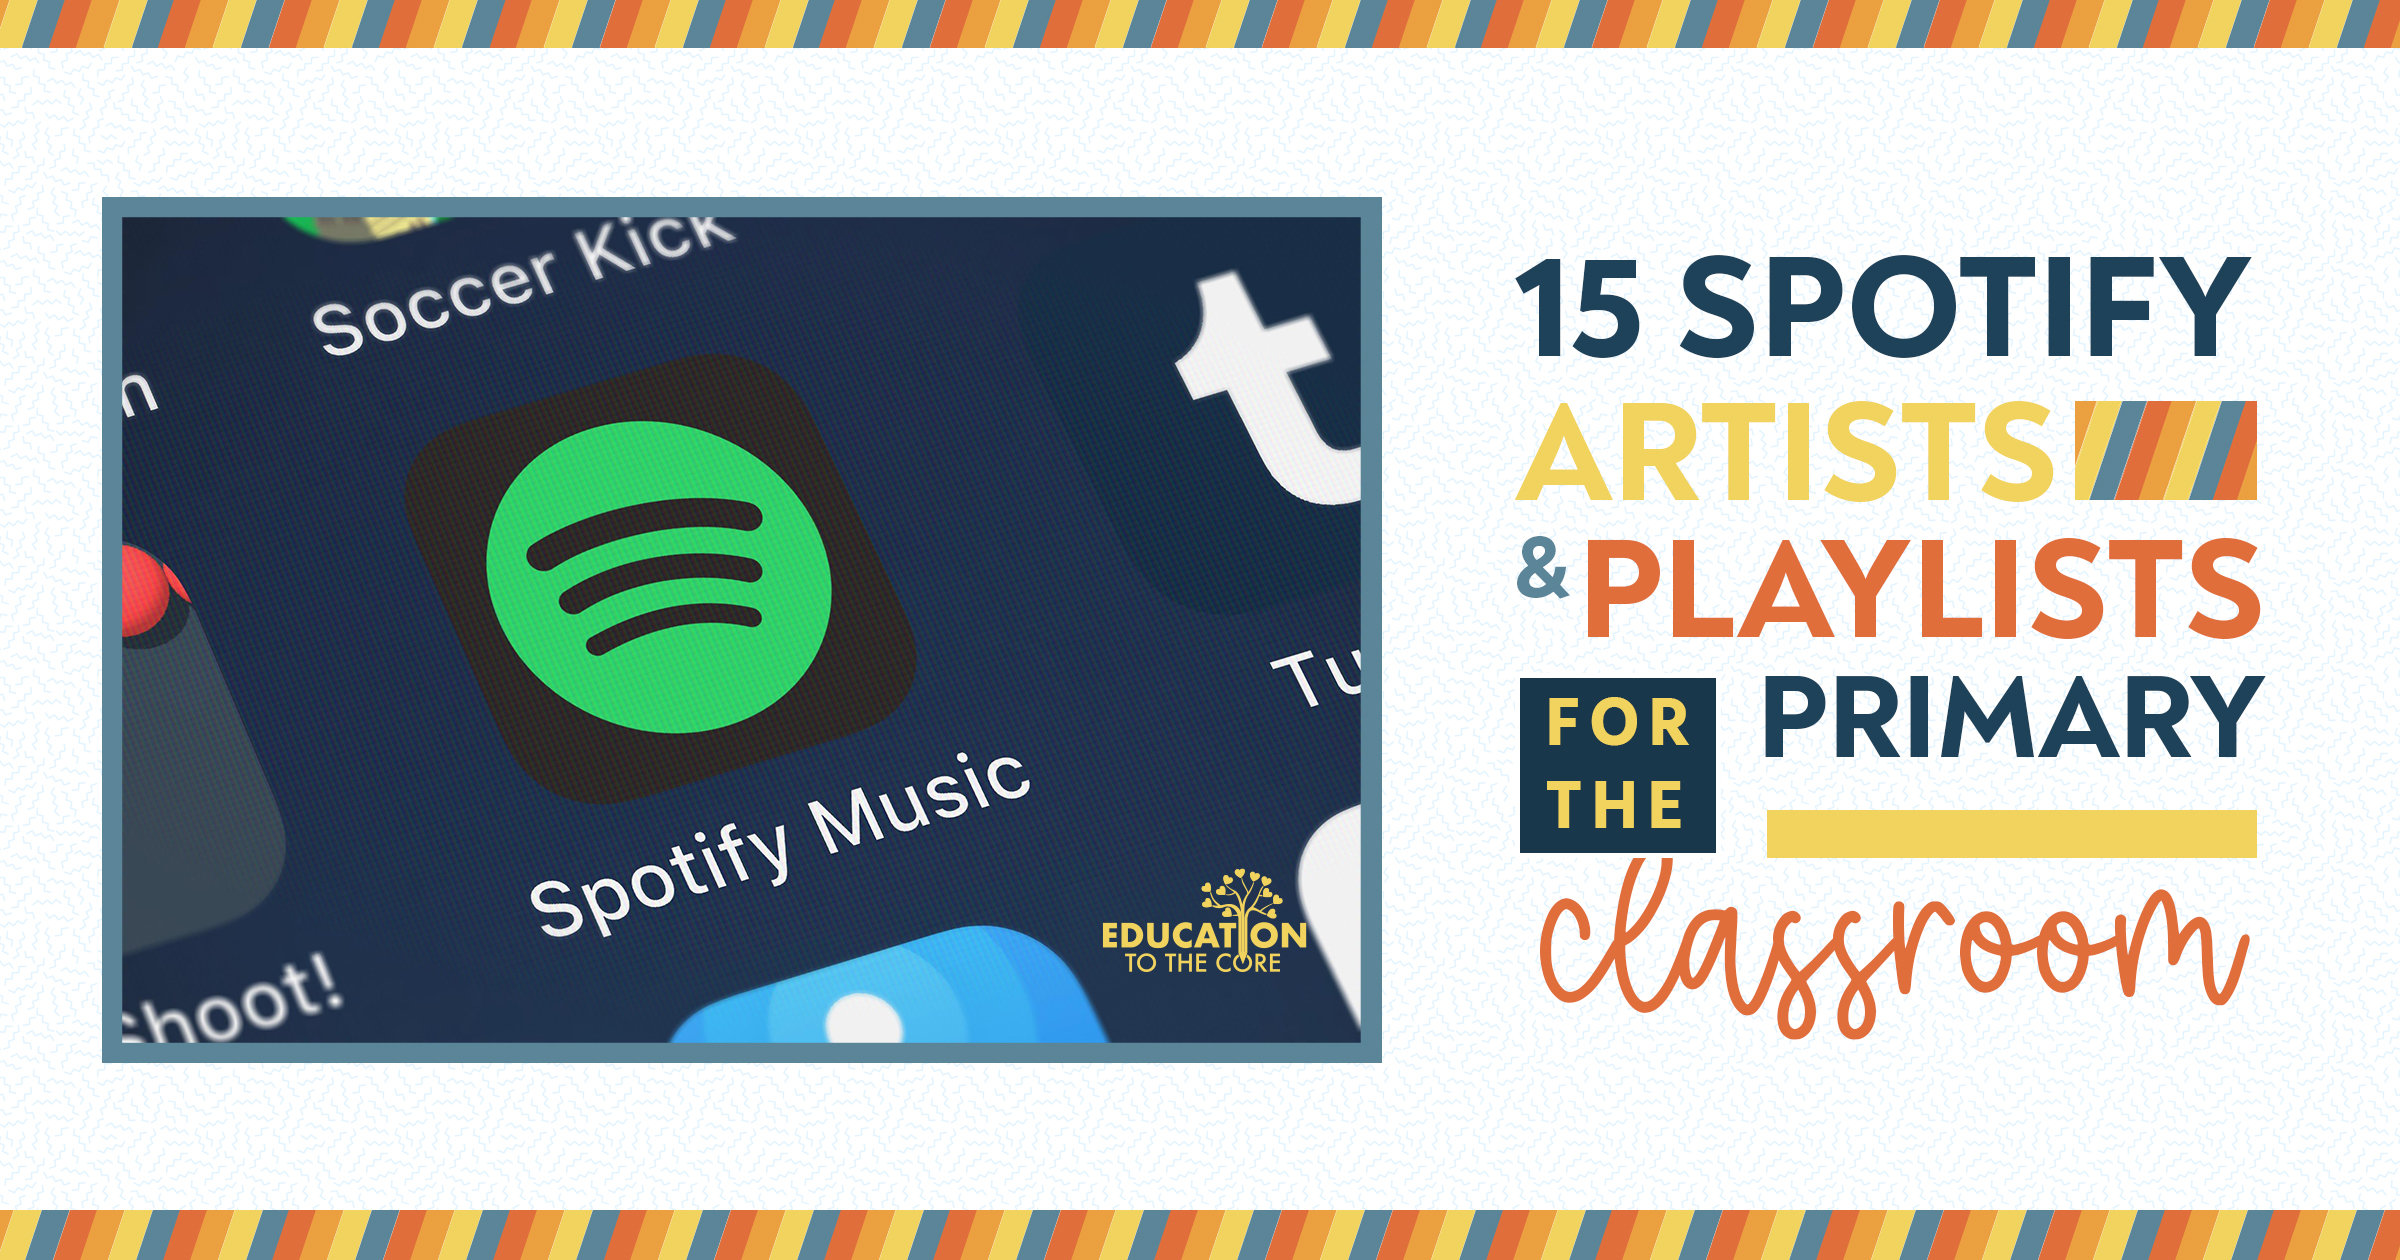 15 Spotify Artists and Playlists for the Primary Classroom